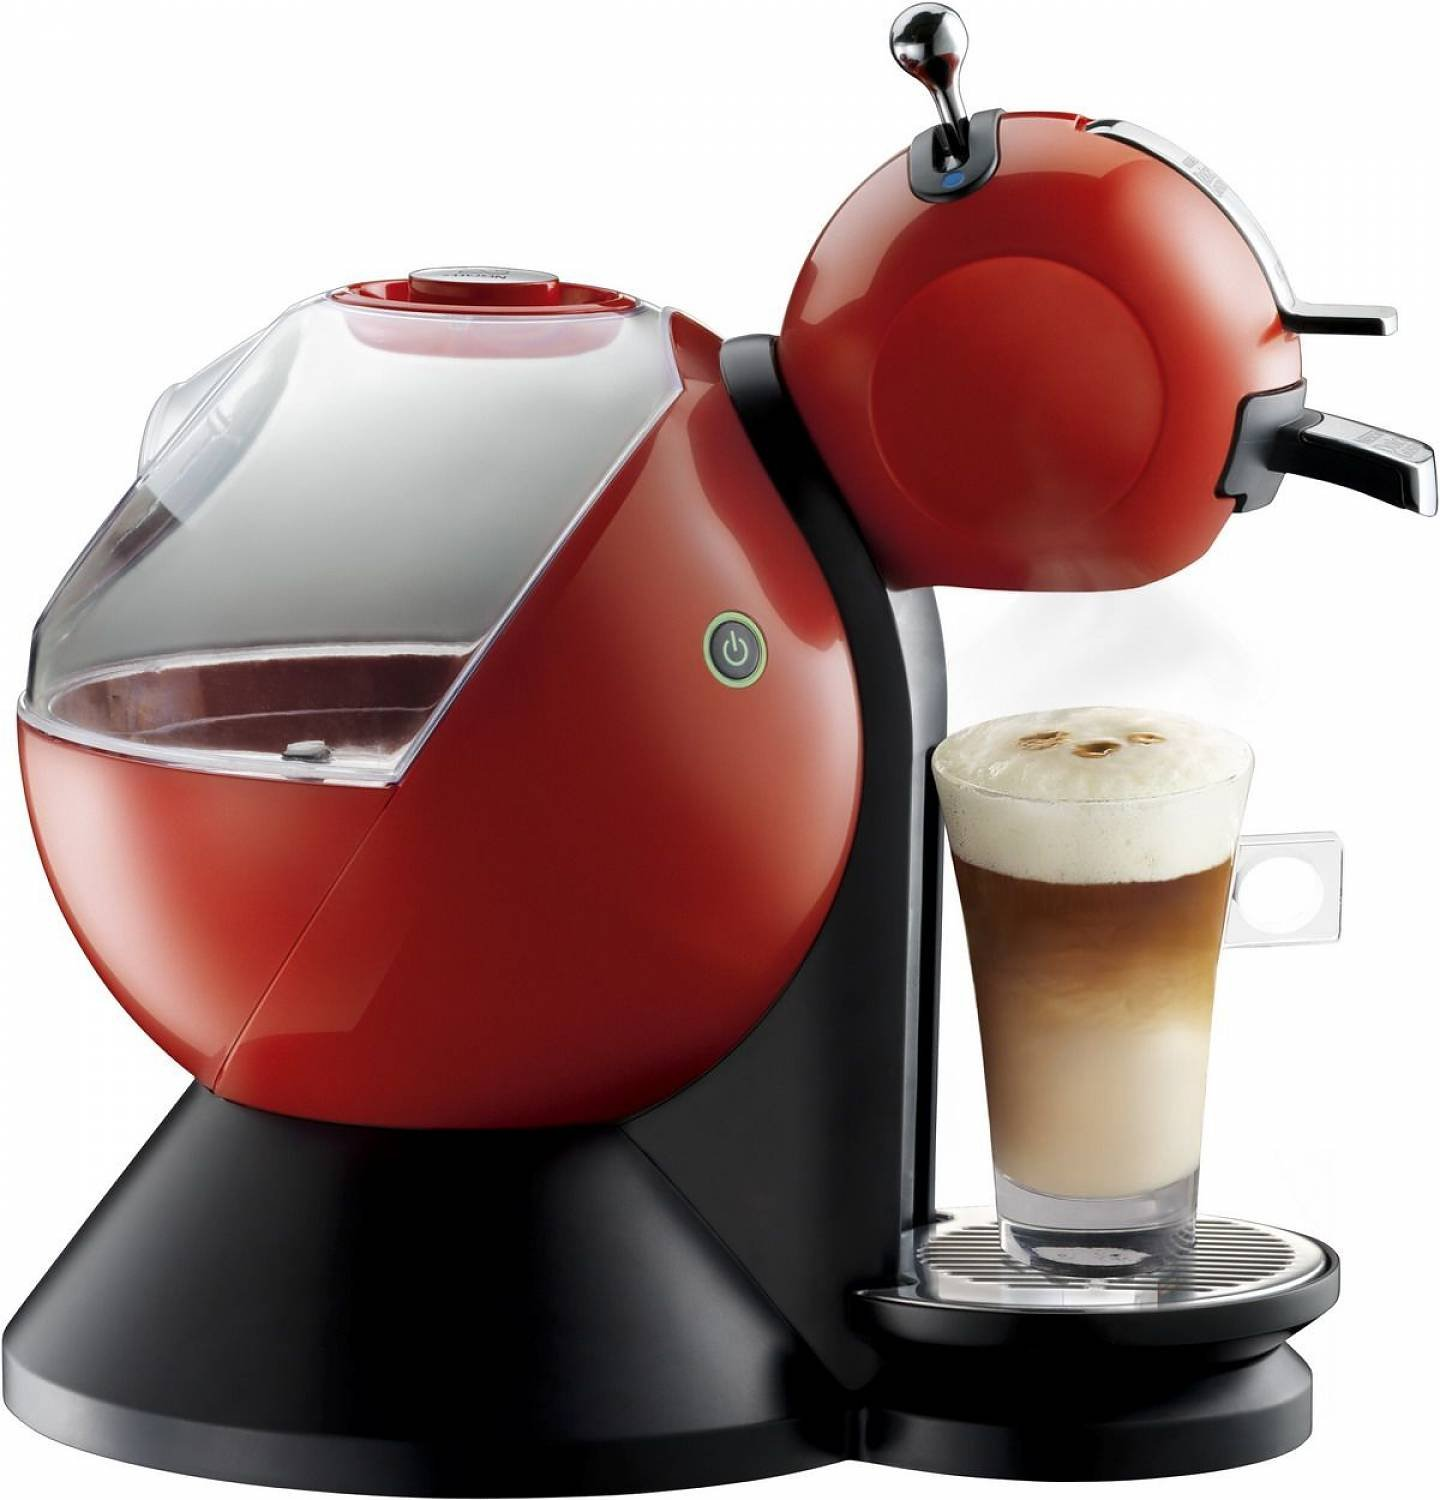 Electronic Nescafe Dolce Gusto Coffee Machines krups dolce gusto kp2106 coffee makers cappuccino red espresso 214 x 305 332 mm amazon co uk kitchen home